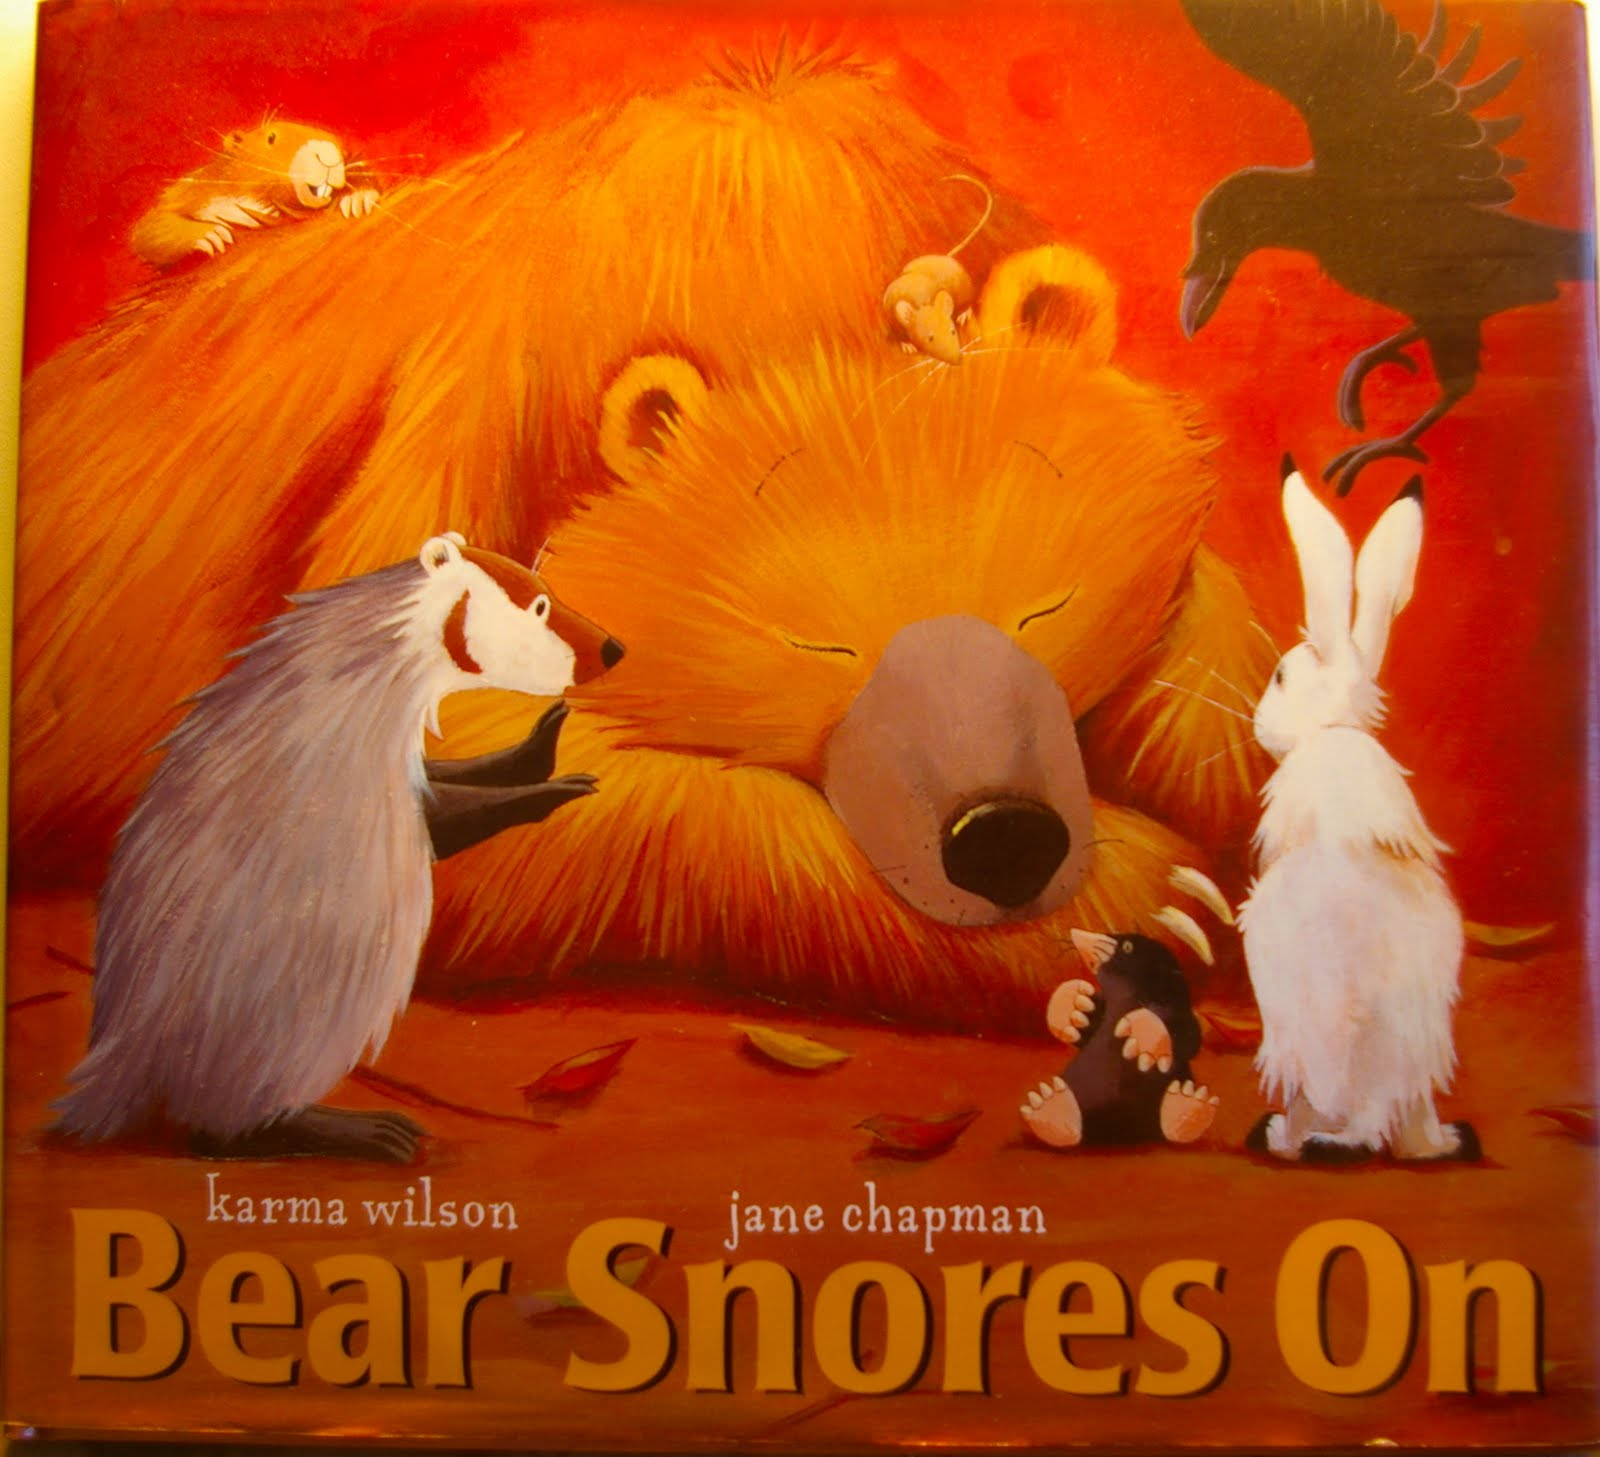 Route 19 Writers Two Of The Best Books For Bedtime From